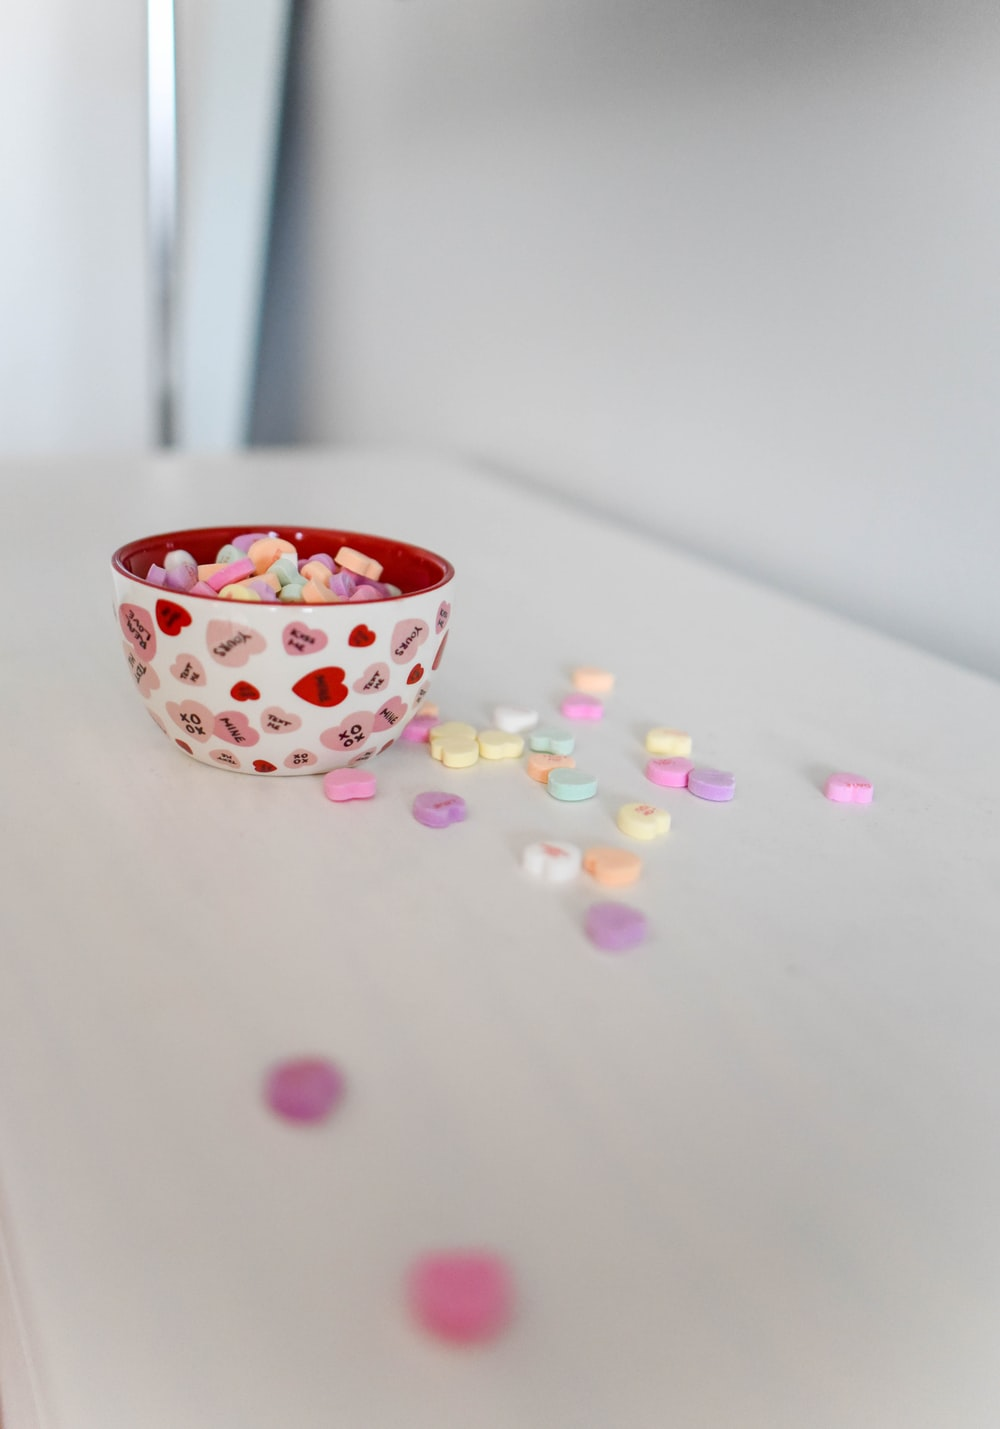 white and red ceramic bowl on white surface